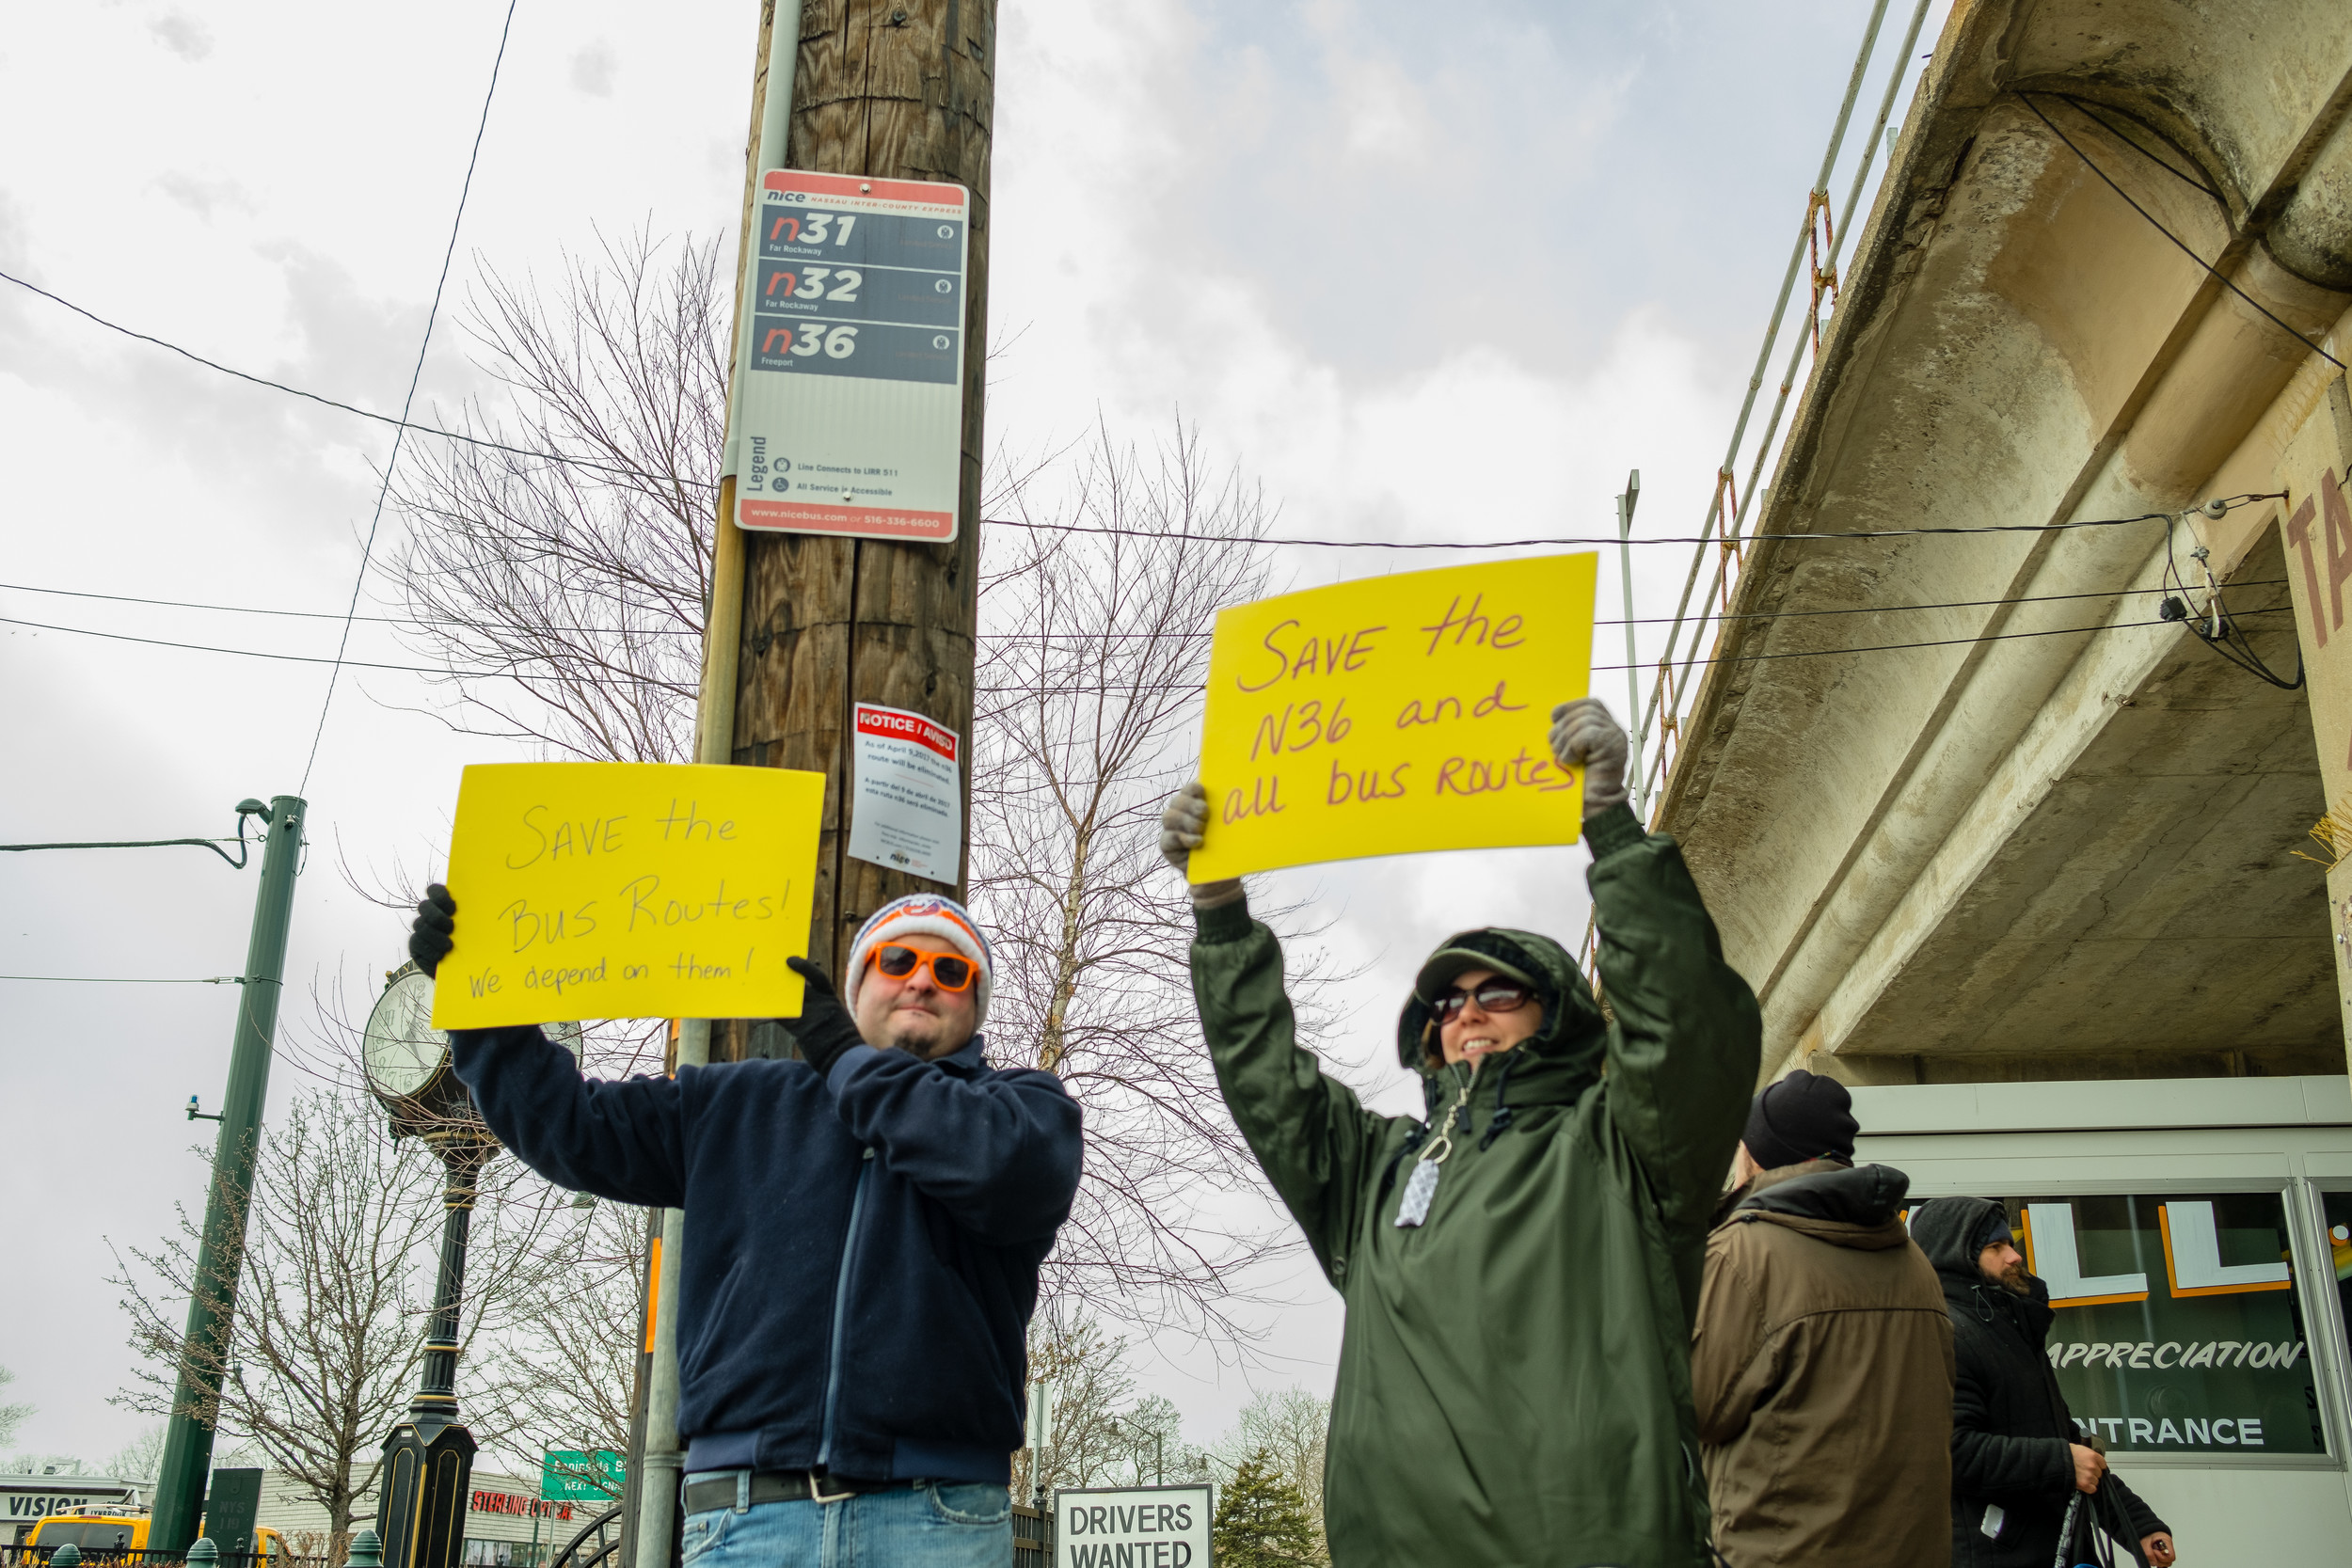 A group of about two dozen people - local residents, elected officials and bus riders - gathered to condemn the planned cut of the N36 NICE bus route. East Rockaway residents Joe and Laura Forgione got their message across.